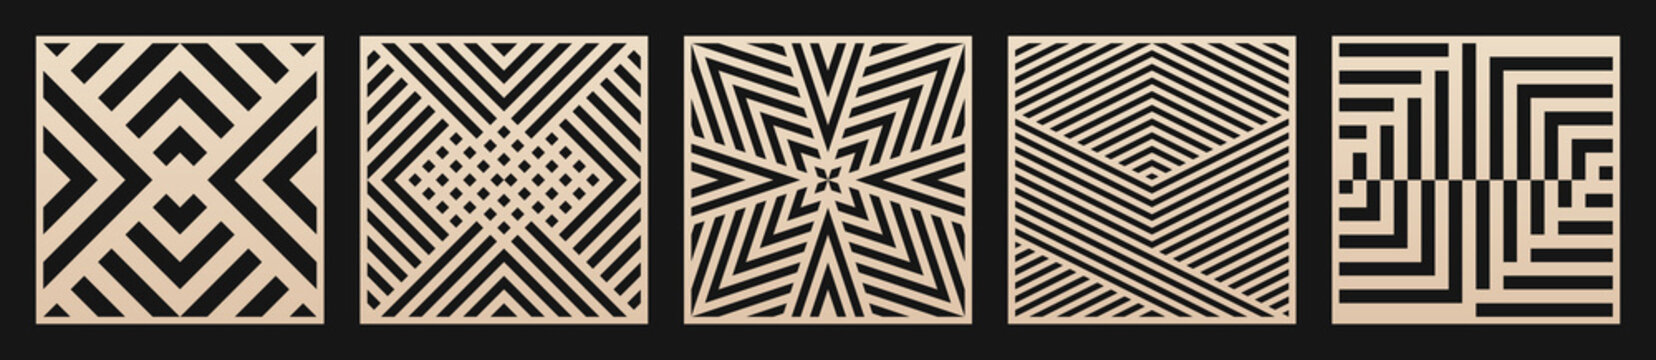 Laser cut patterns set. Vector collection of square cutting templates with abstract geometric ornament, lines, stripes. Decorative stencil for laser cut of wood, metal, plastic. Aspect ratio 1:1